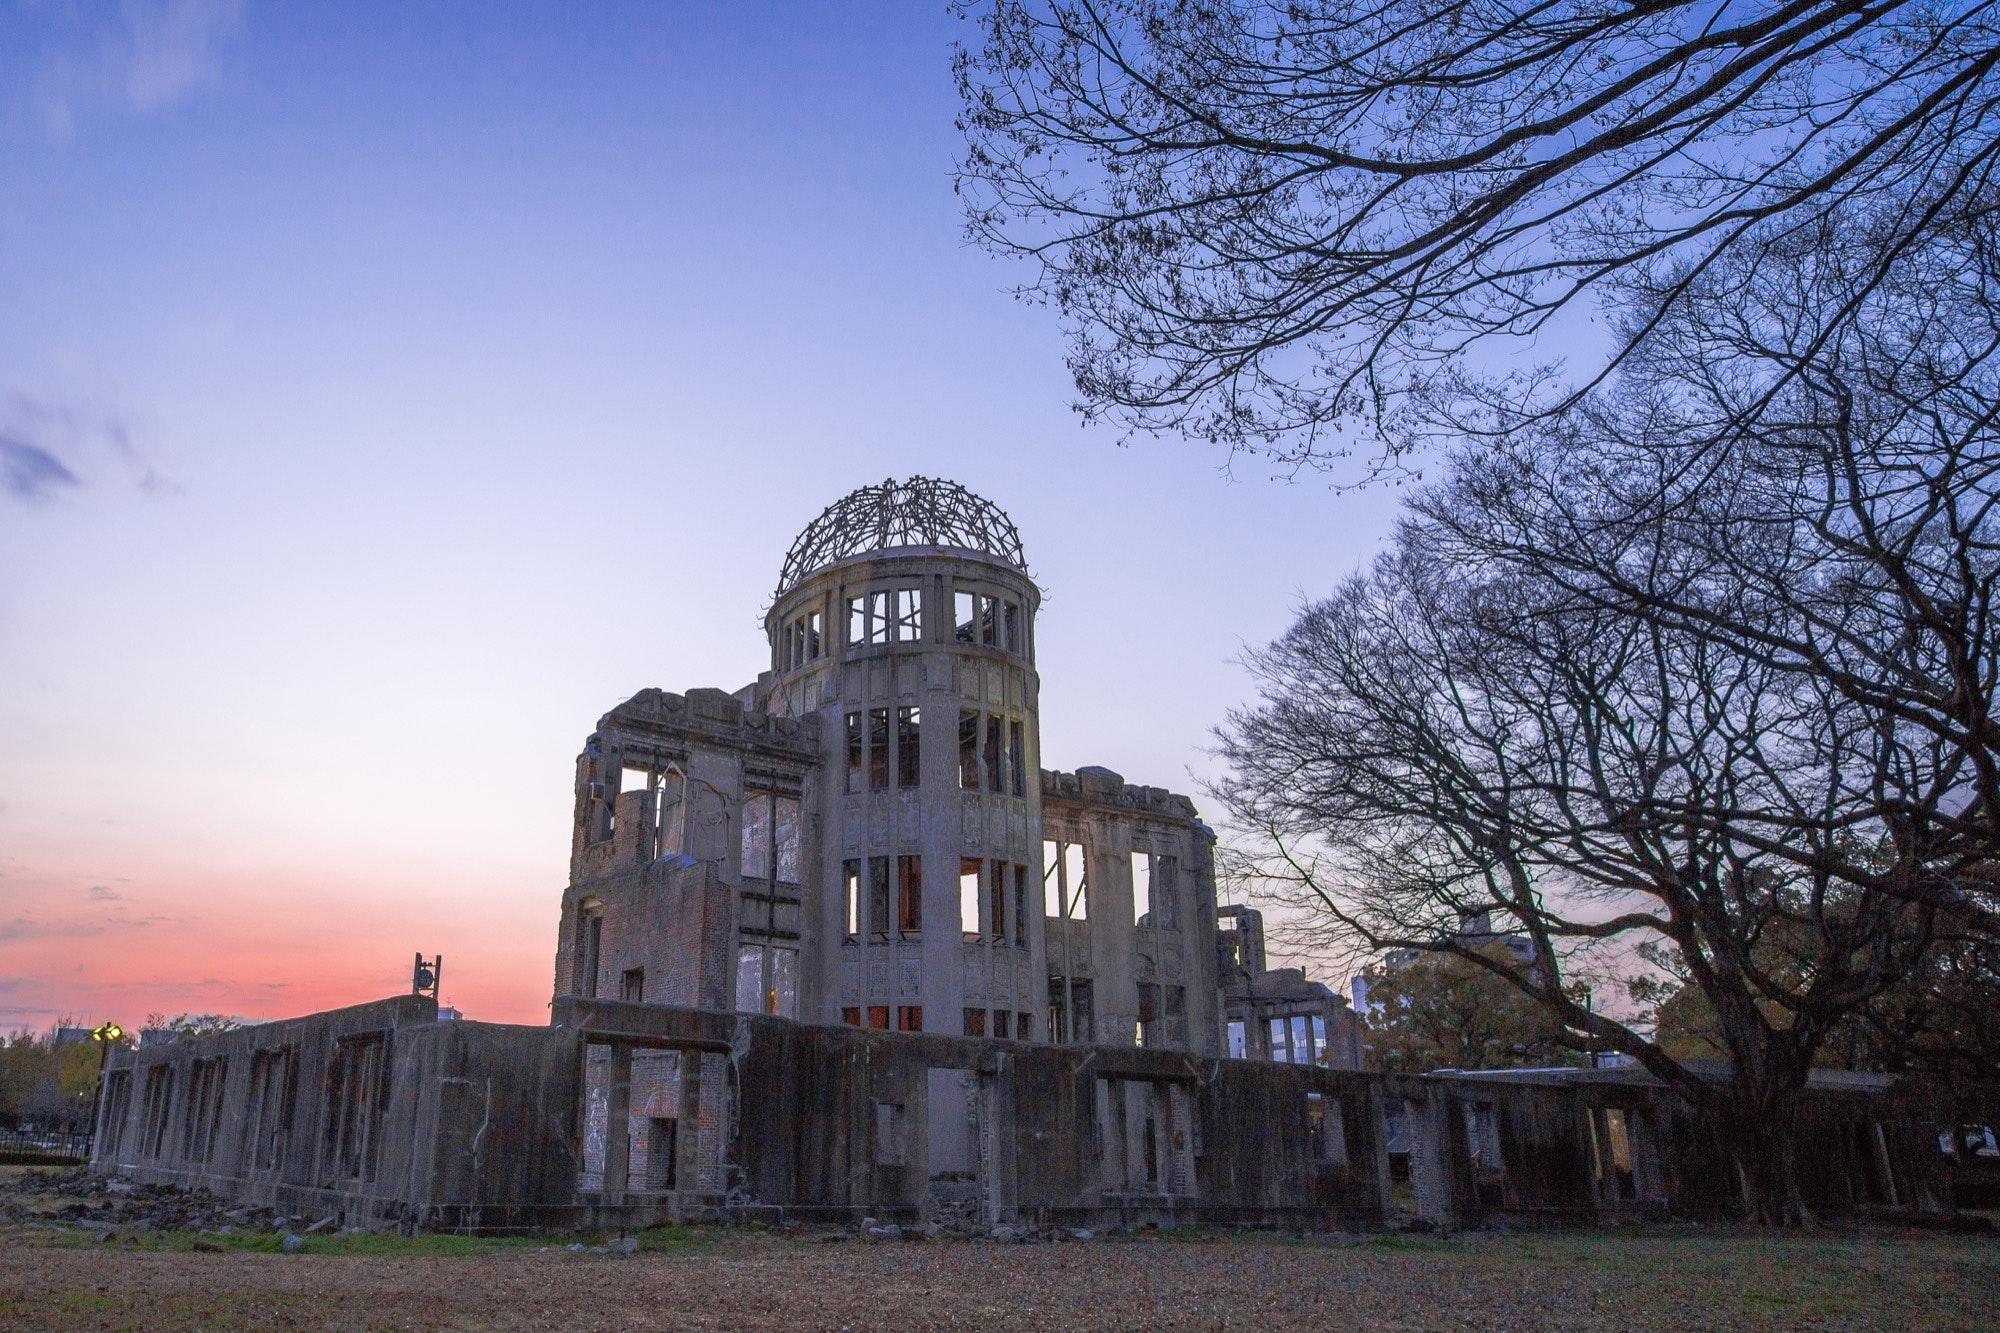 The Atomic Bomb Dome today in Hiroshima.